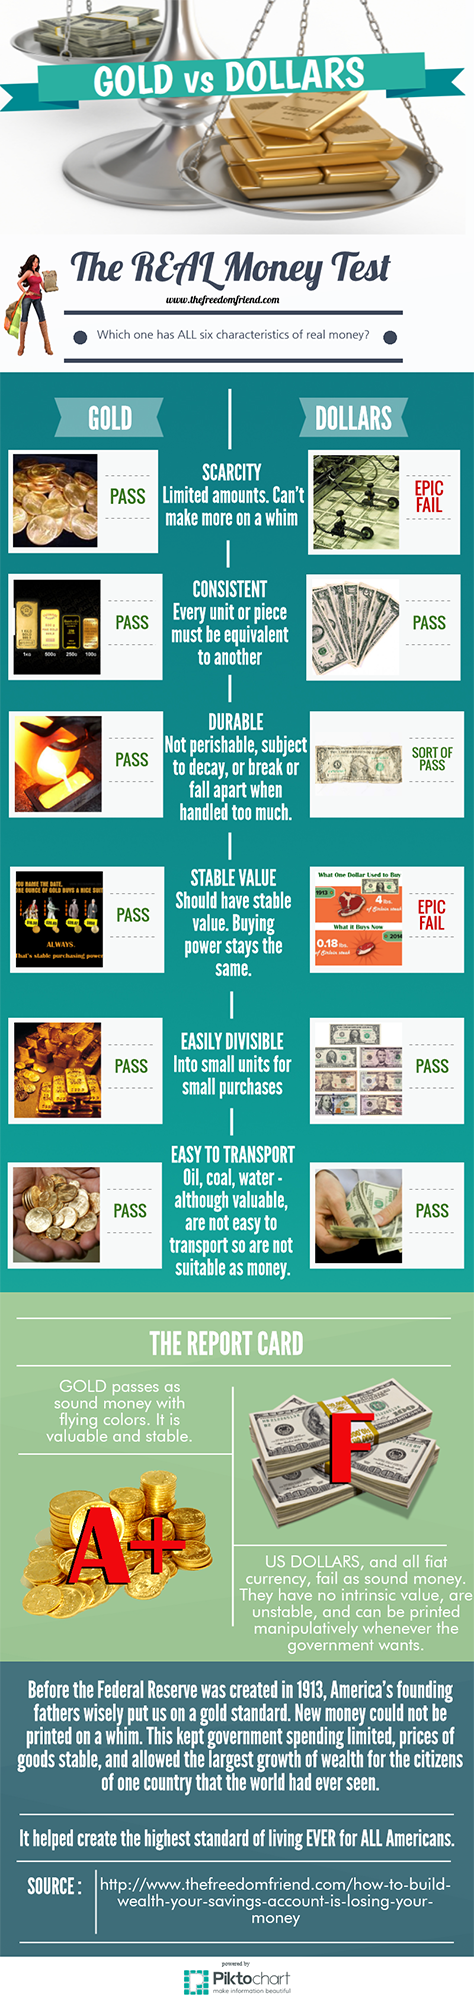 If you like this infographic and found it helpful in understanding money, please share it with your friends and family!